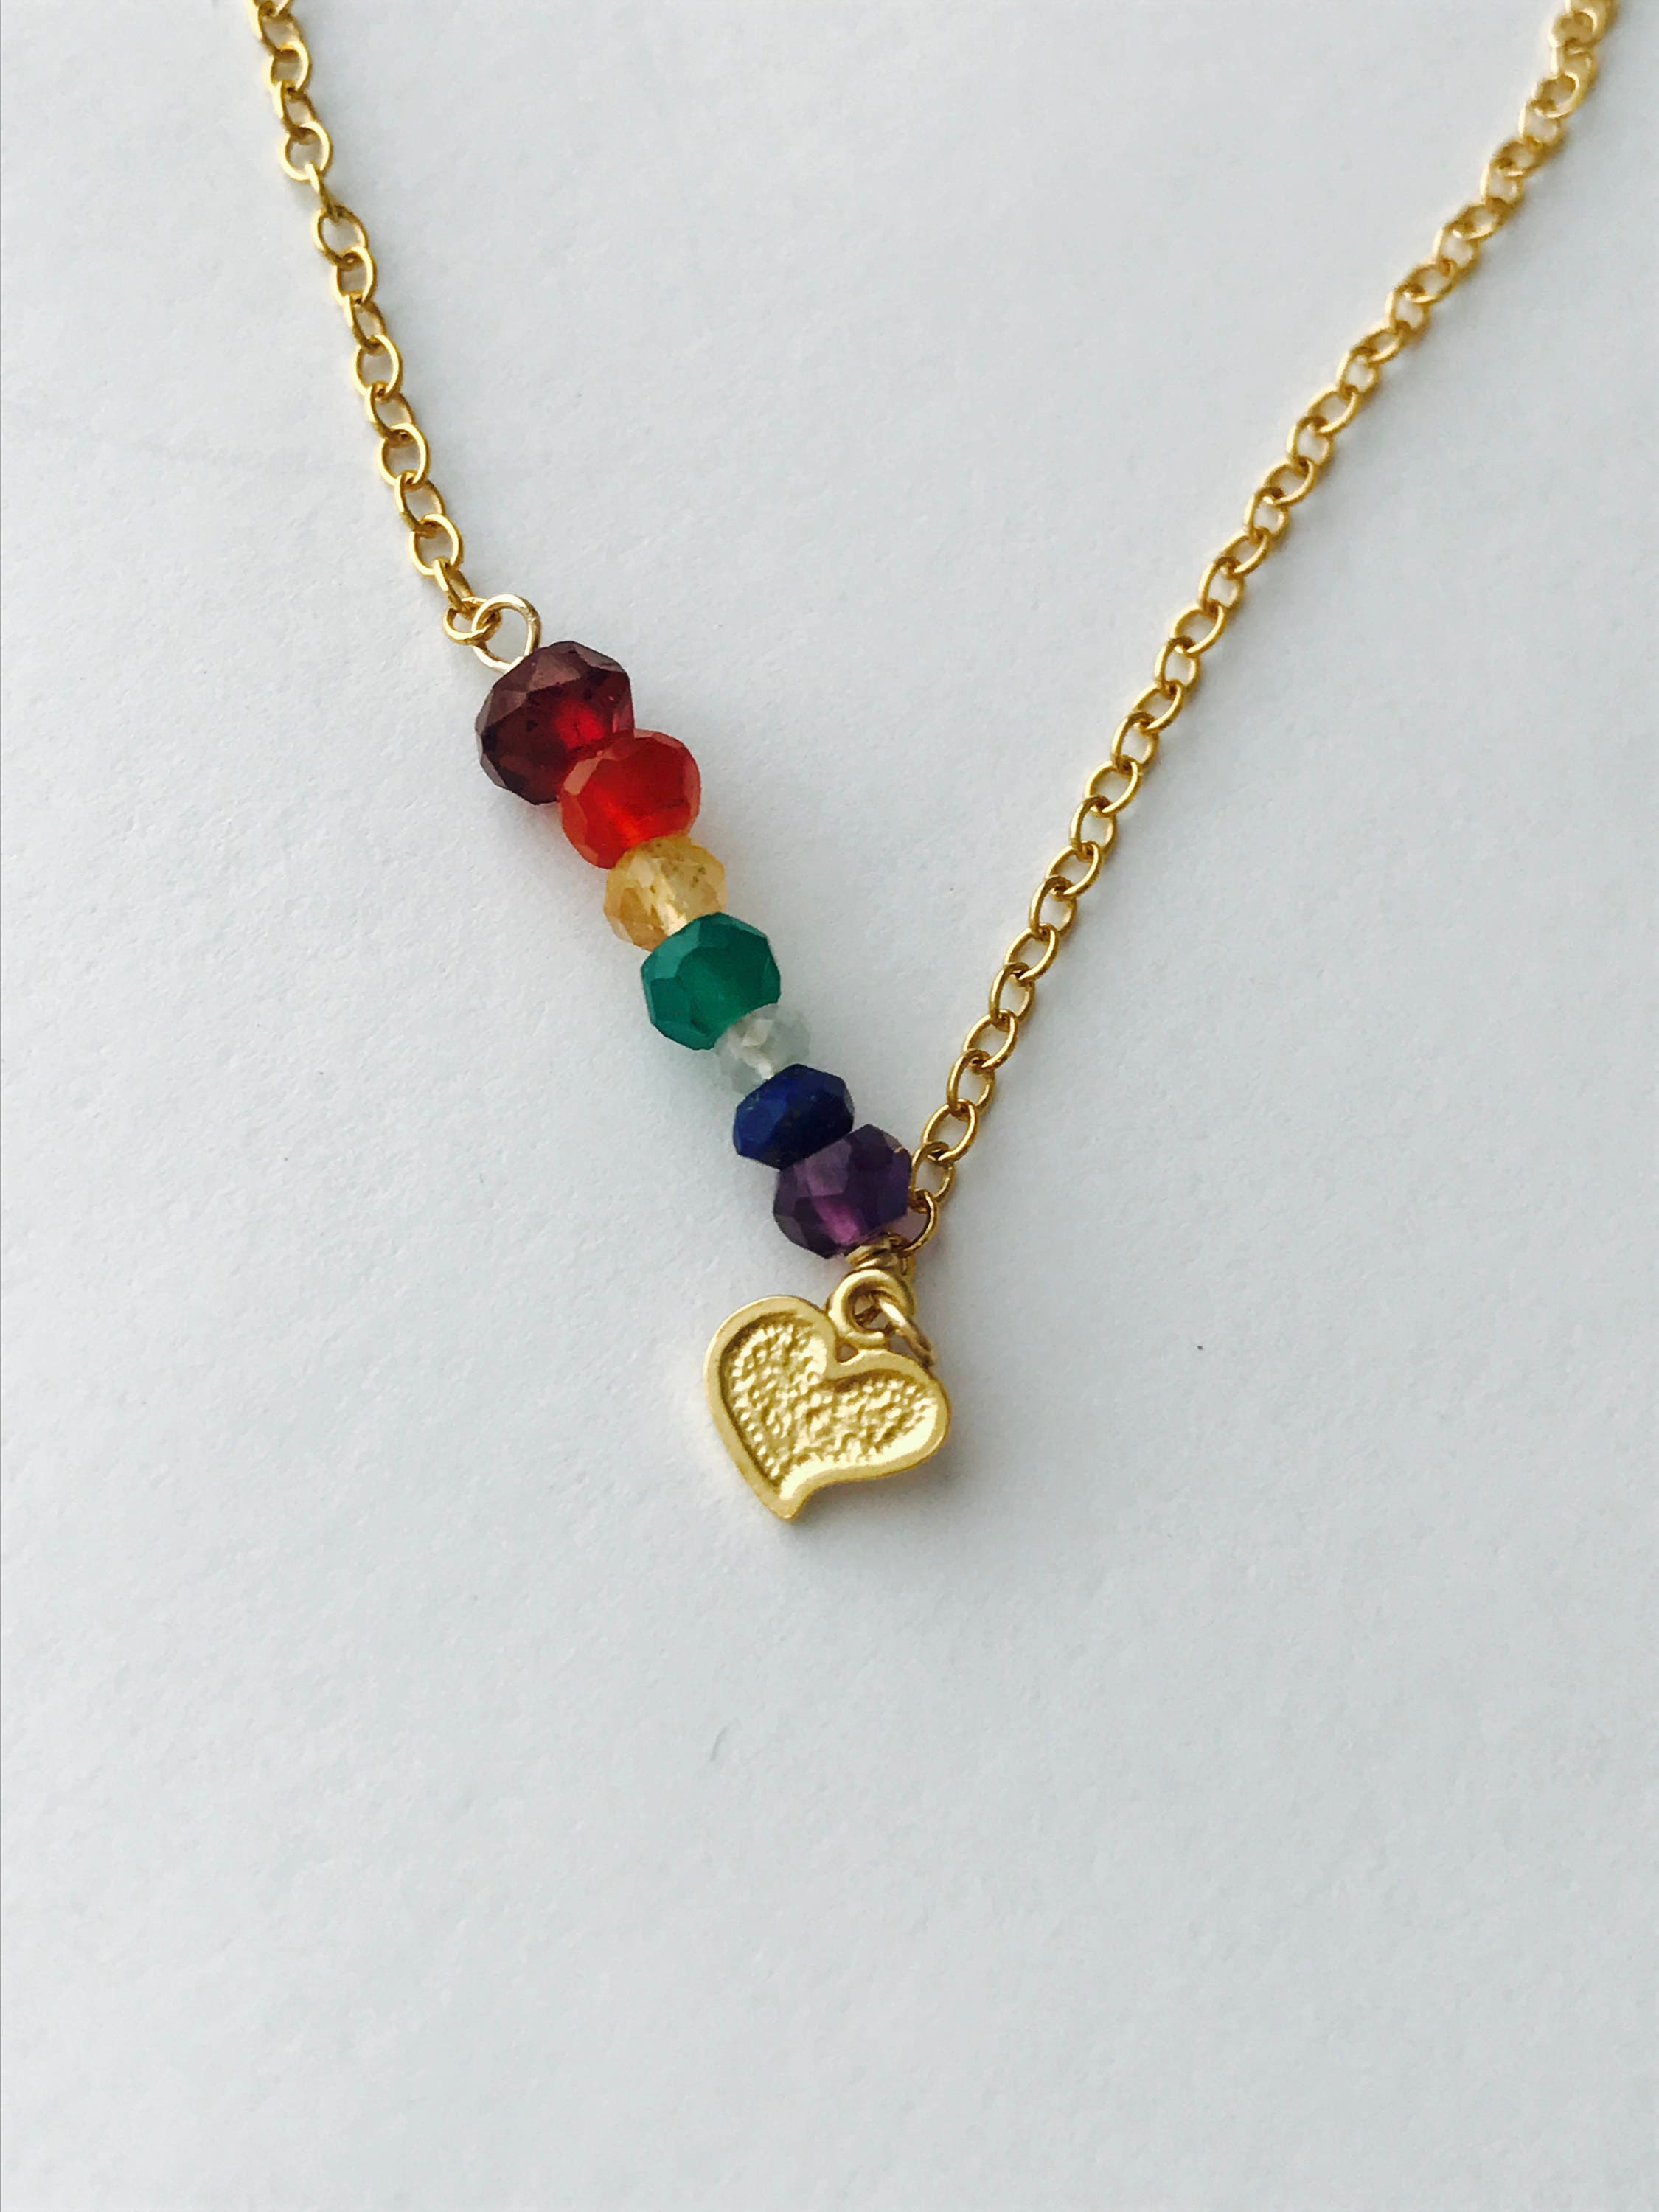 om jewelry necklace necklaces be img trendy canada yoga